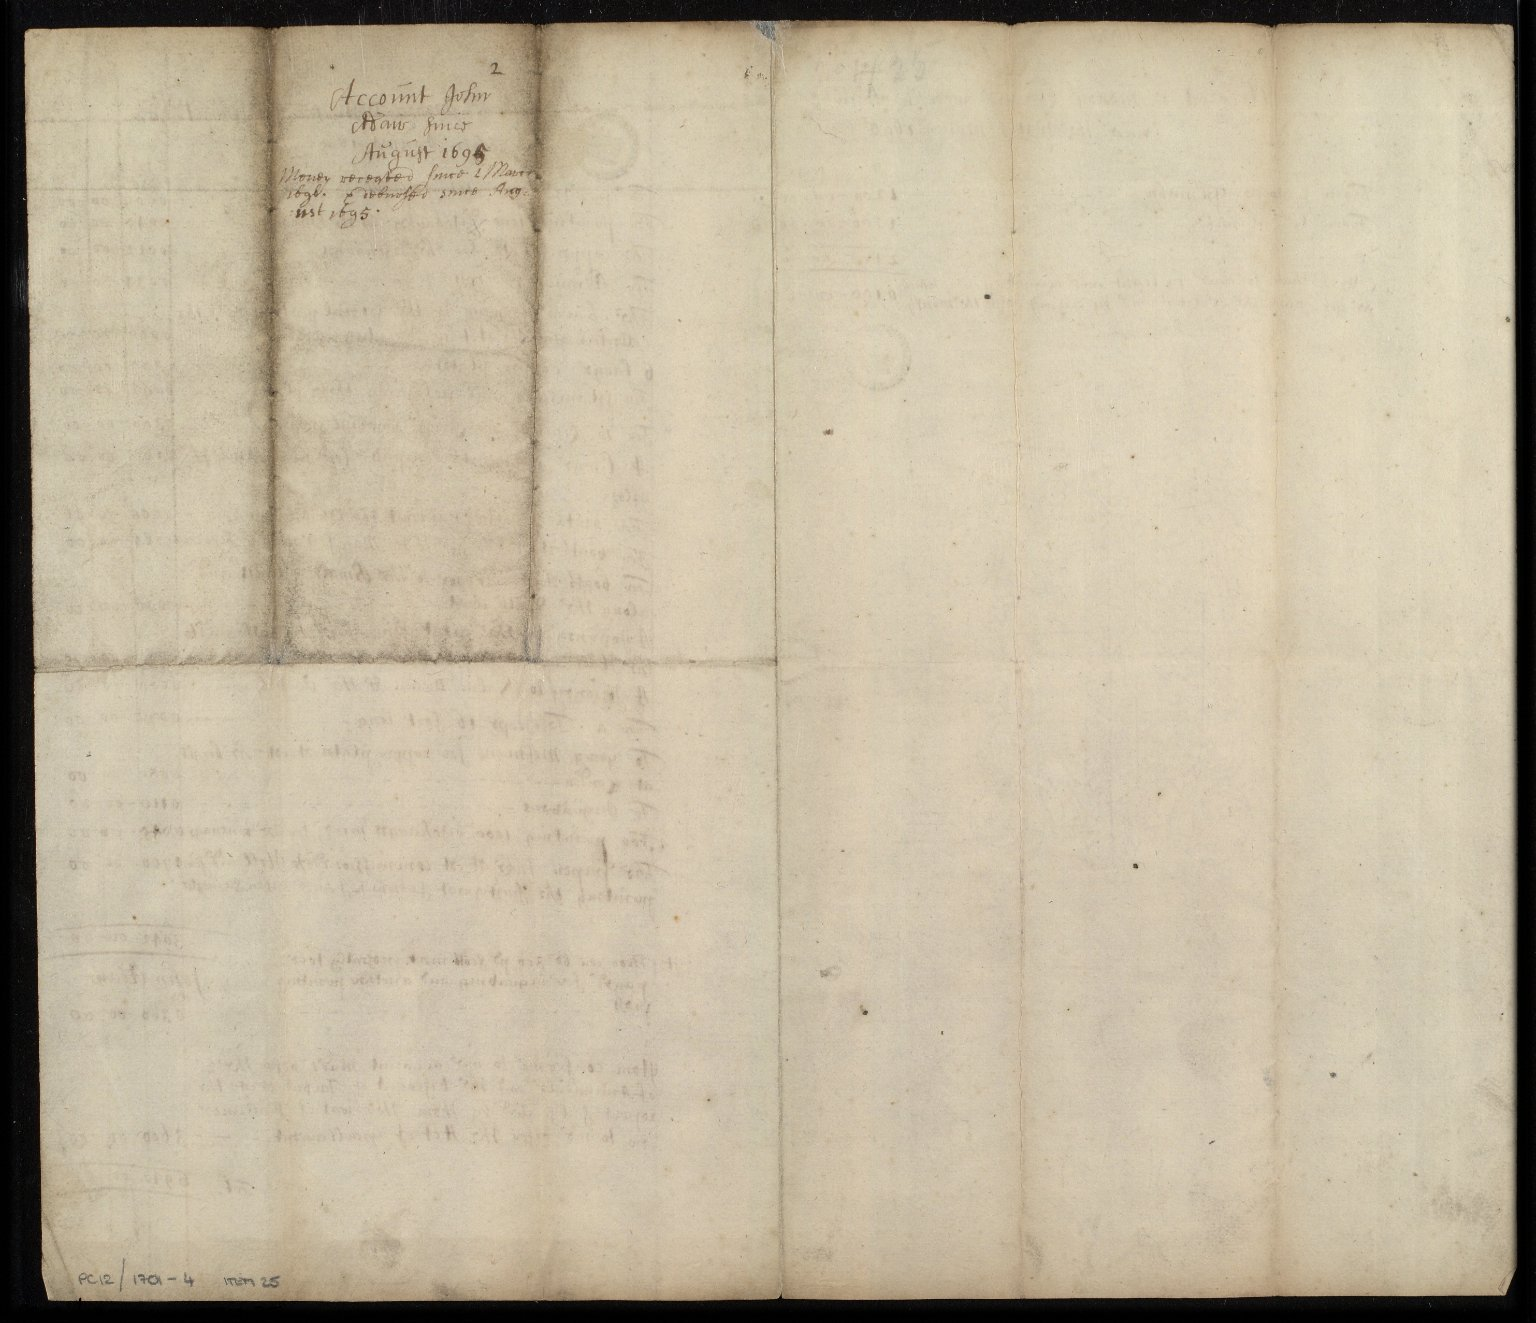 [Holograph accounts of money disbursed by John Adair since August 1695] [2 of 2]